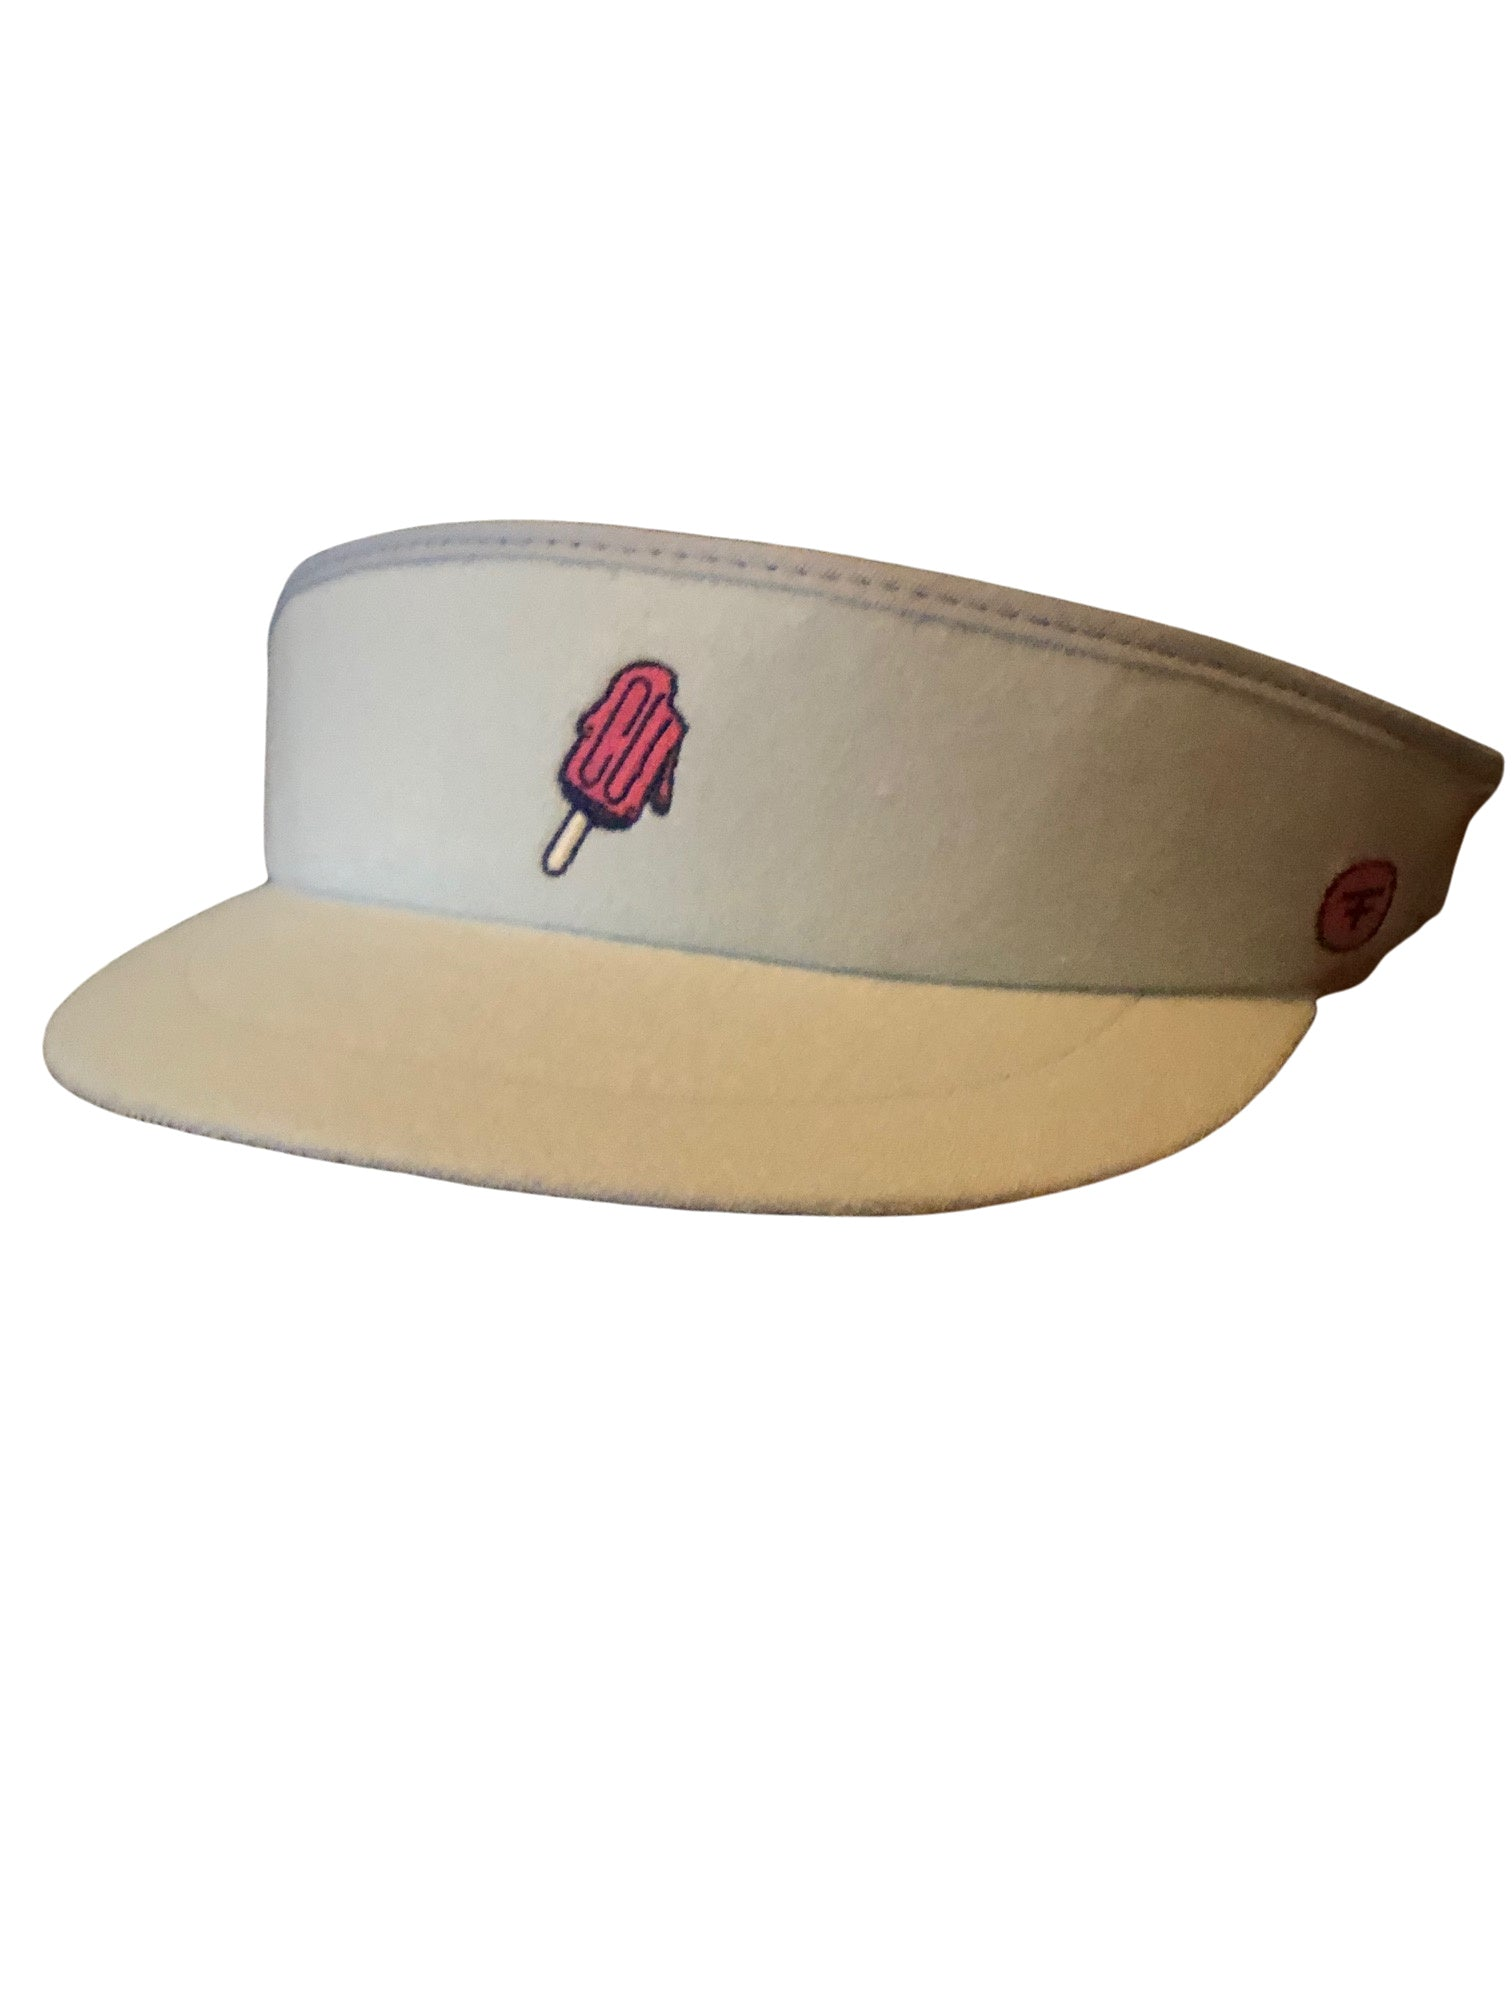 TERRY POP TOUR VISOR- LIGHT BLUE